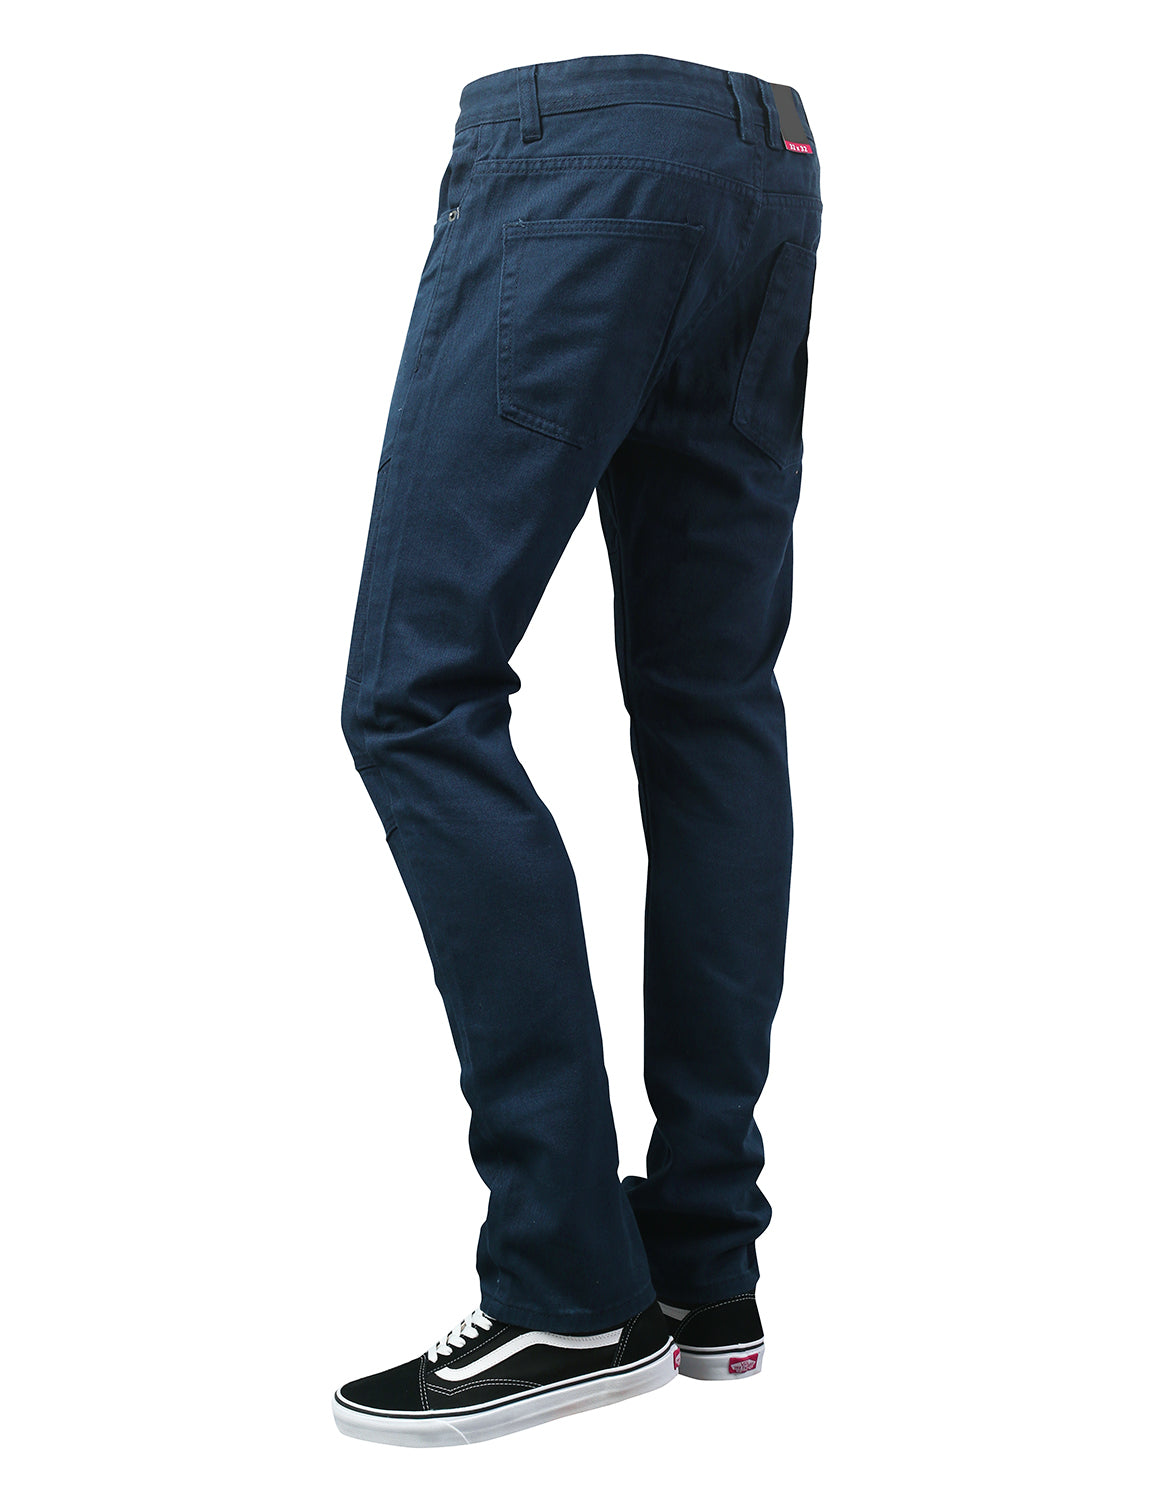 NAVY Basic Color Moto Denim Jeans - URBANCREWS